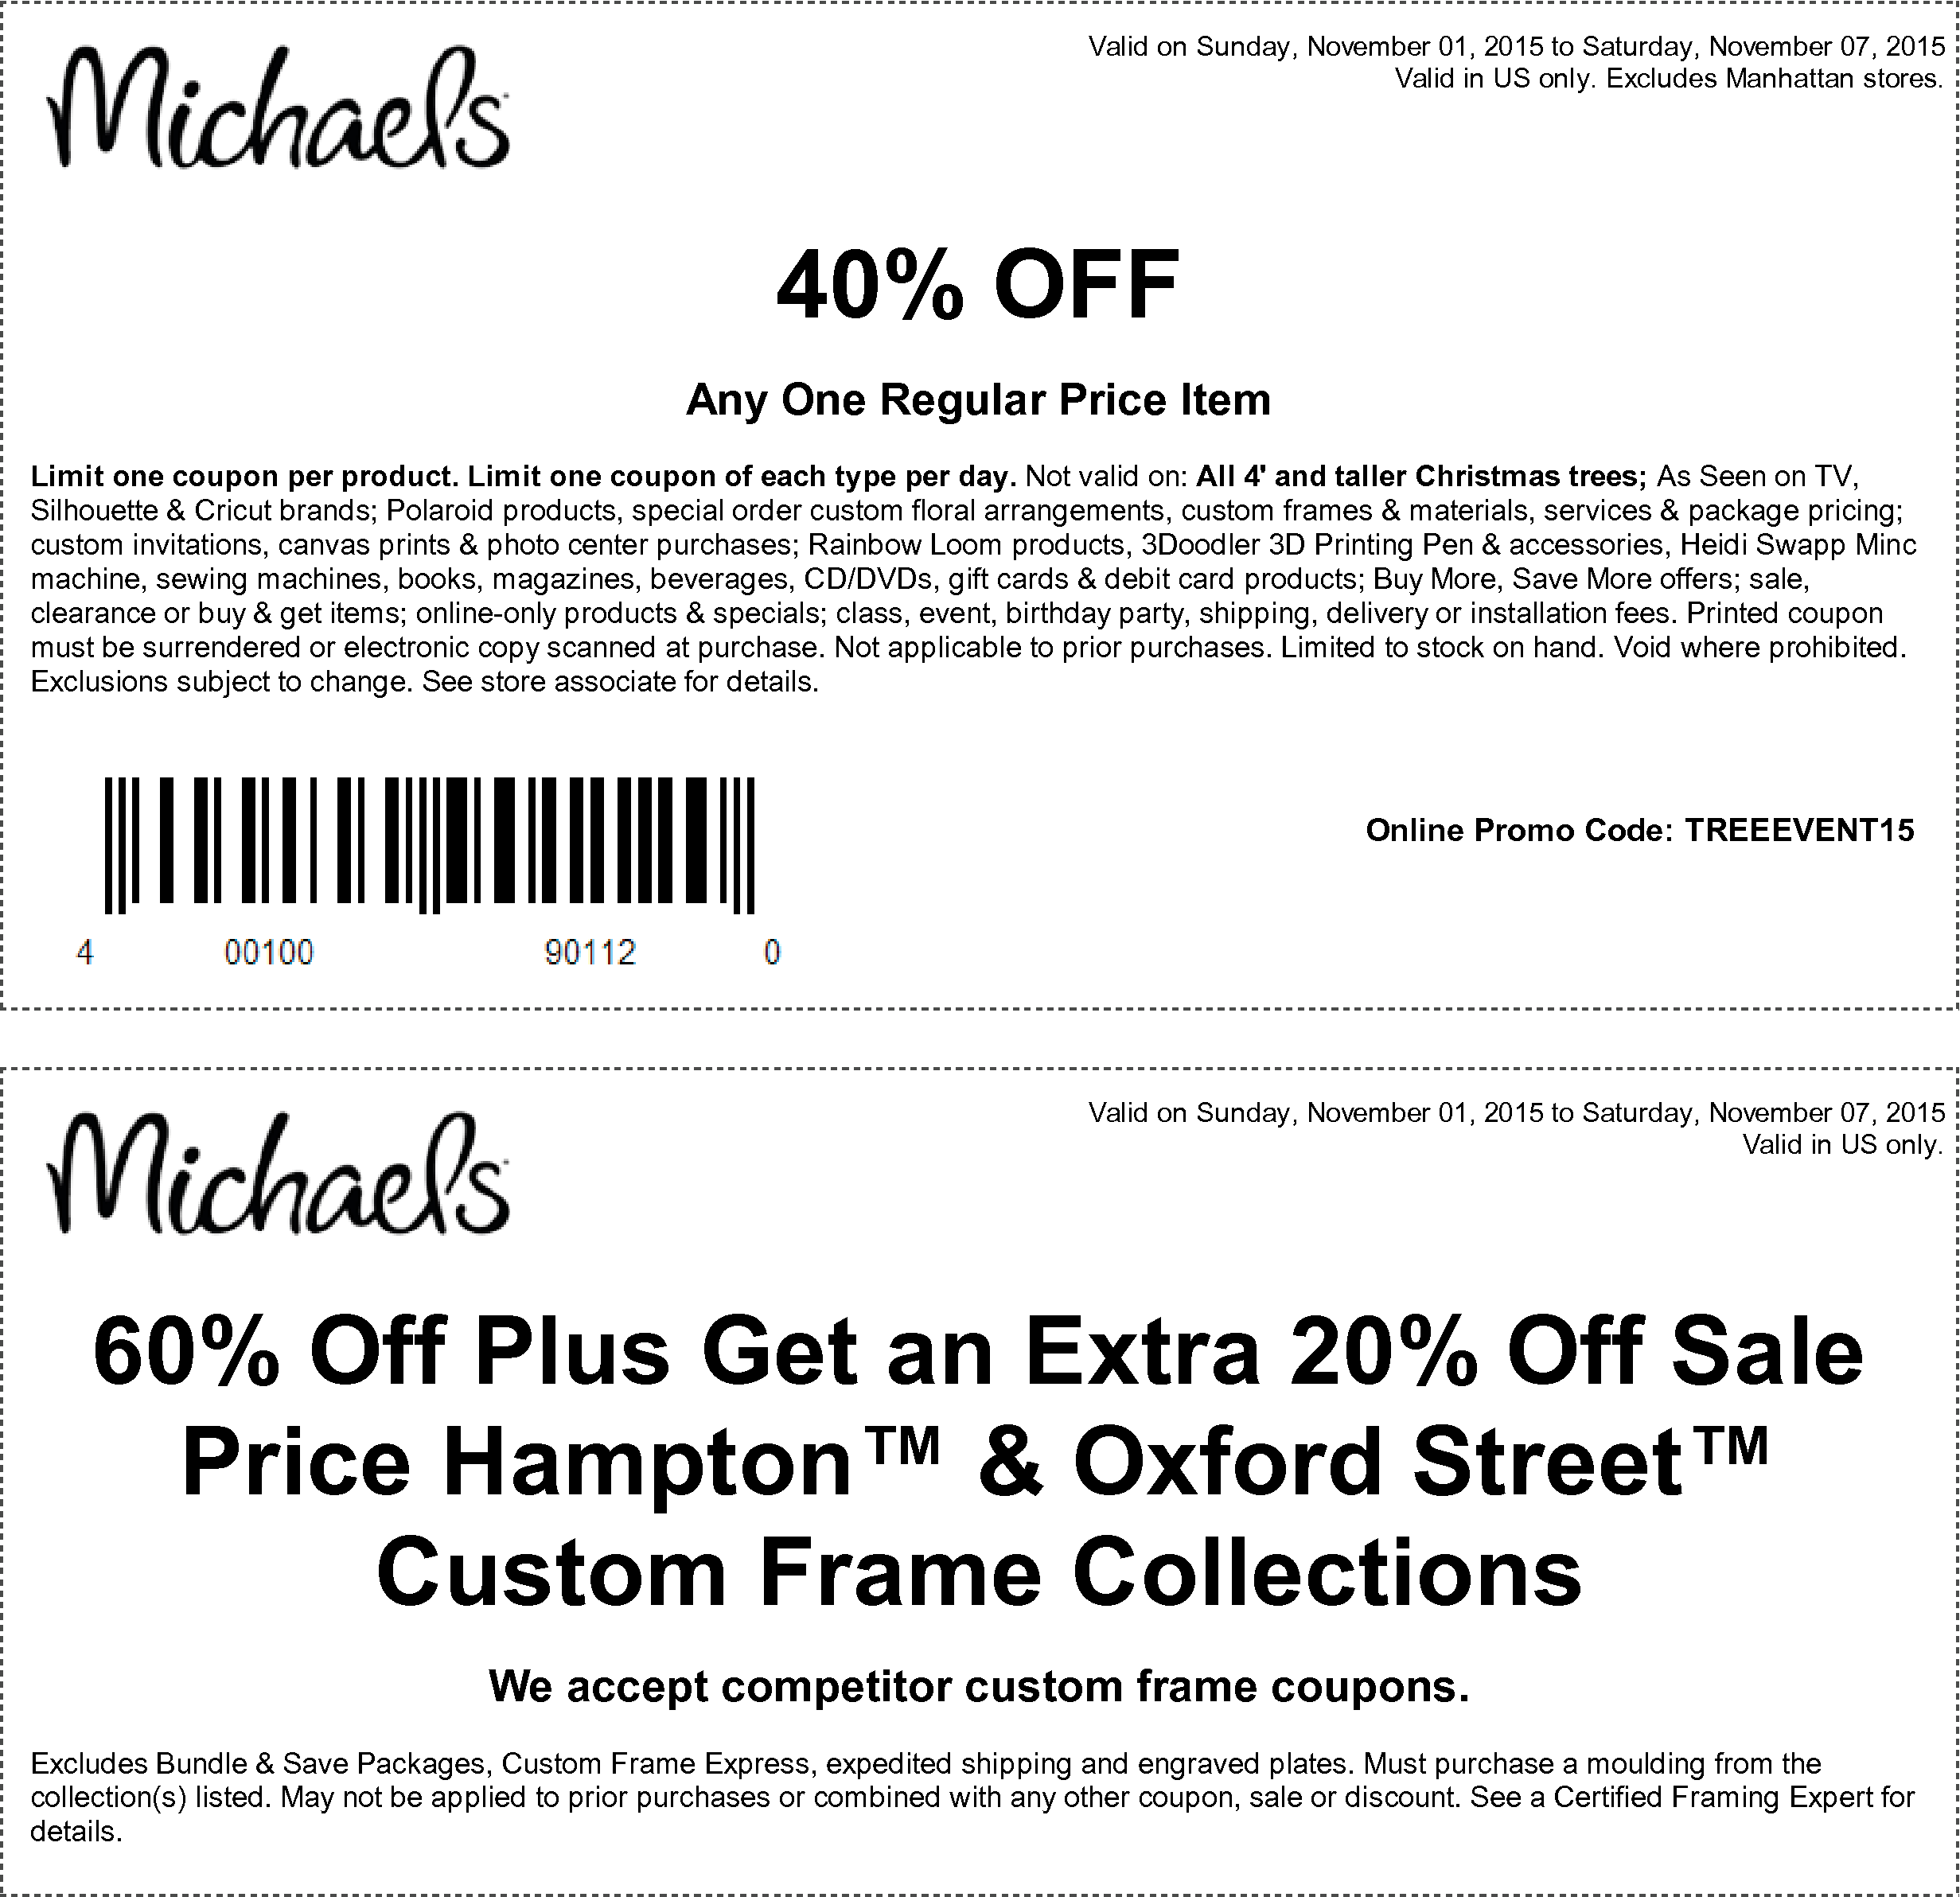 Michaels Coupon May 2017 40% off a single item at Michaels, or online via promo code TREEEVENT15